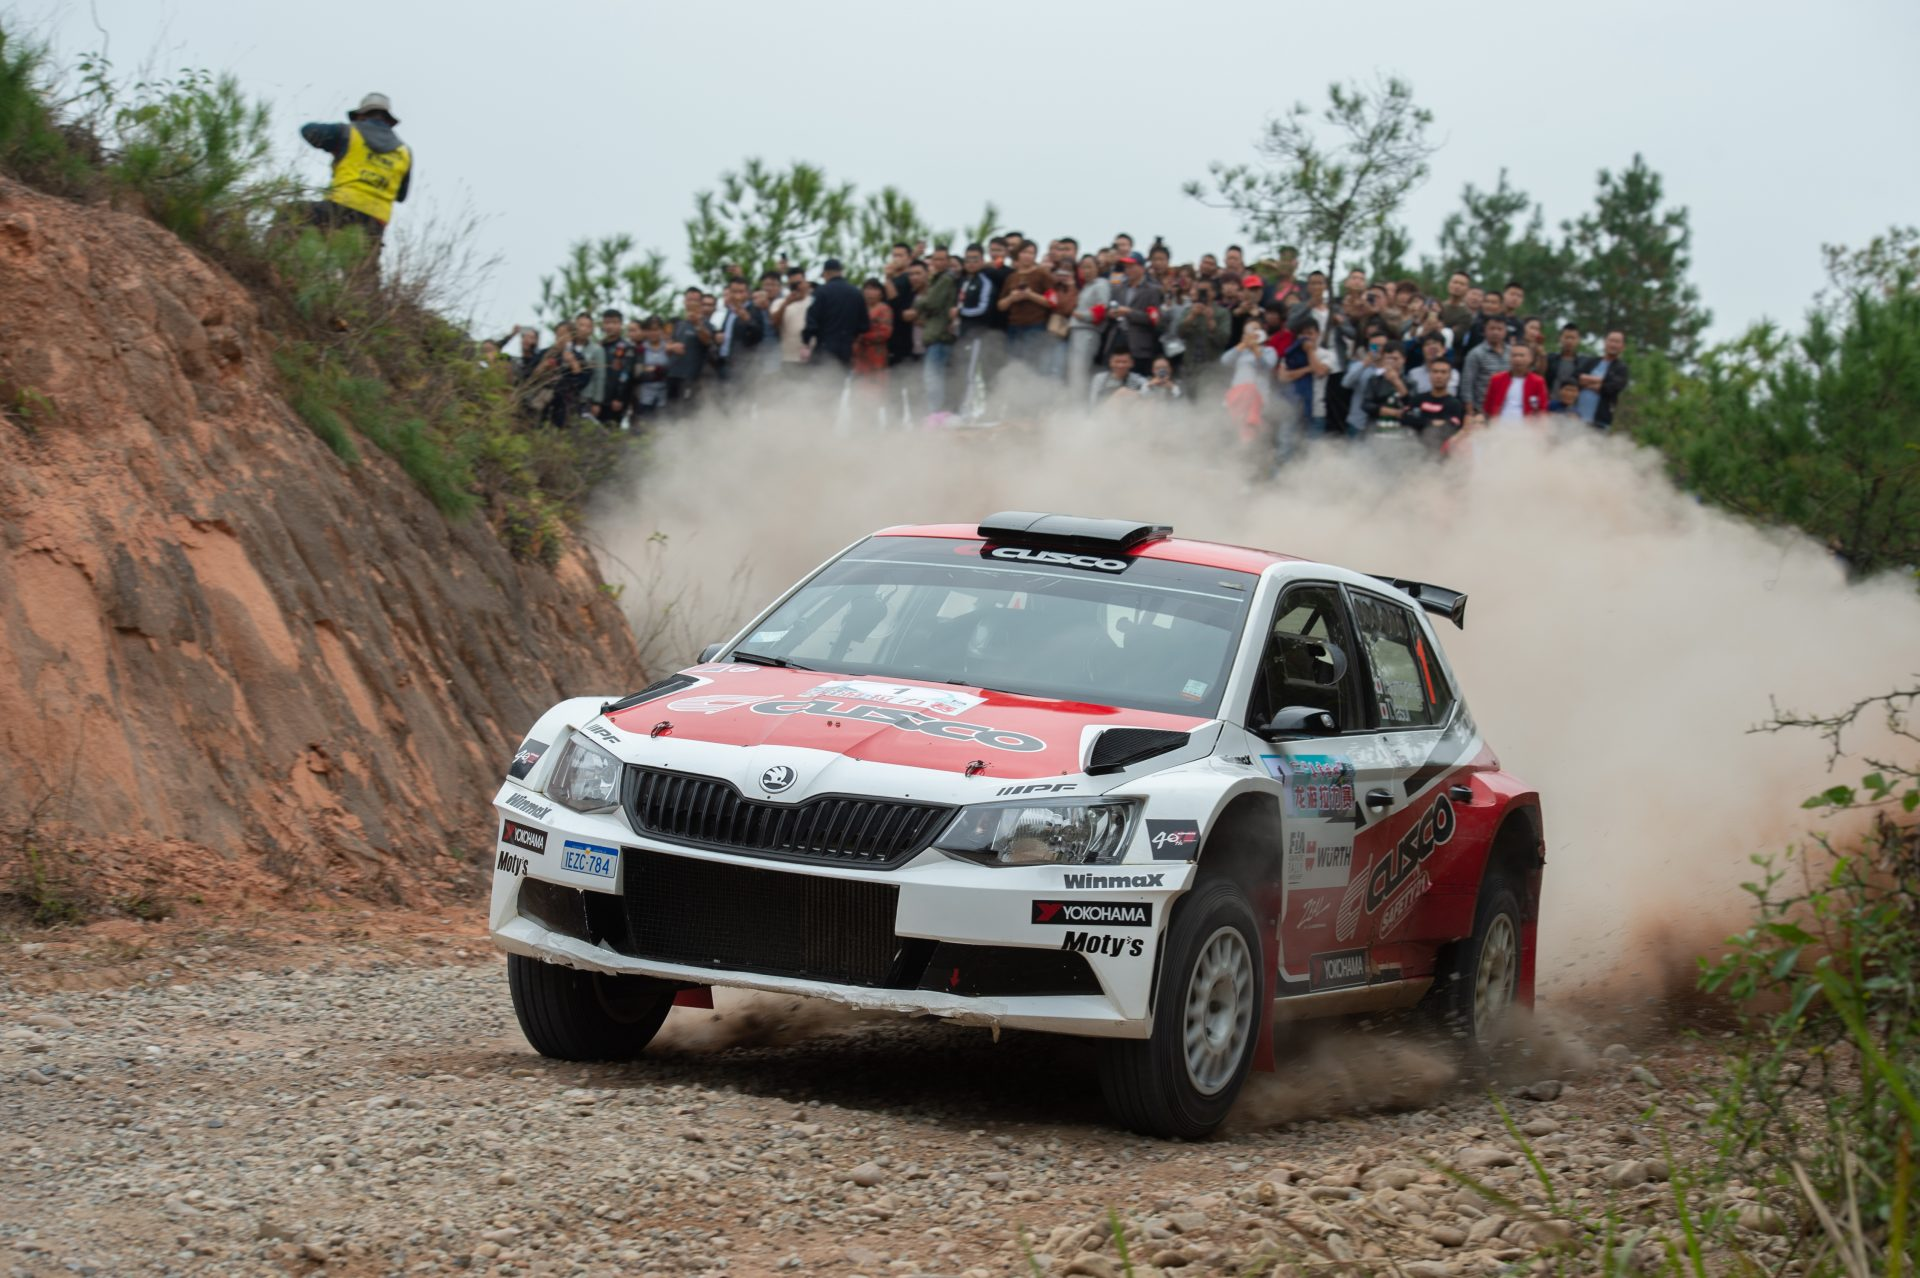 Yuya Sumiyama Wins China Rally Longyou, APRC Title